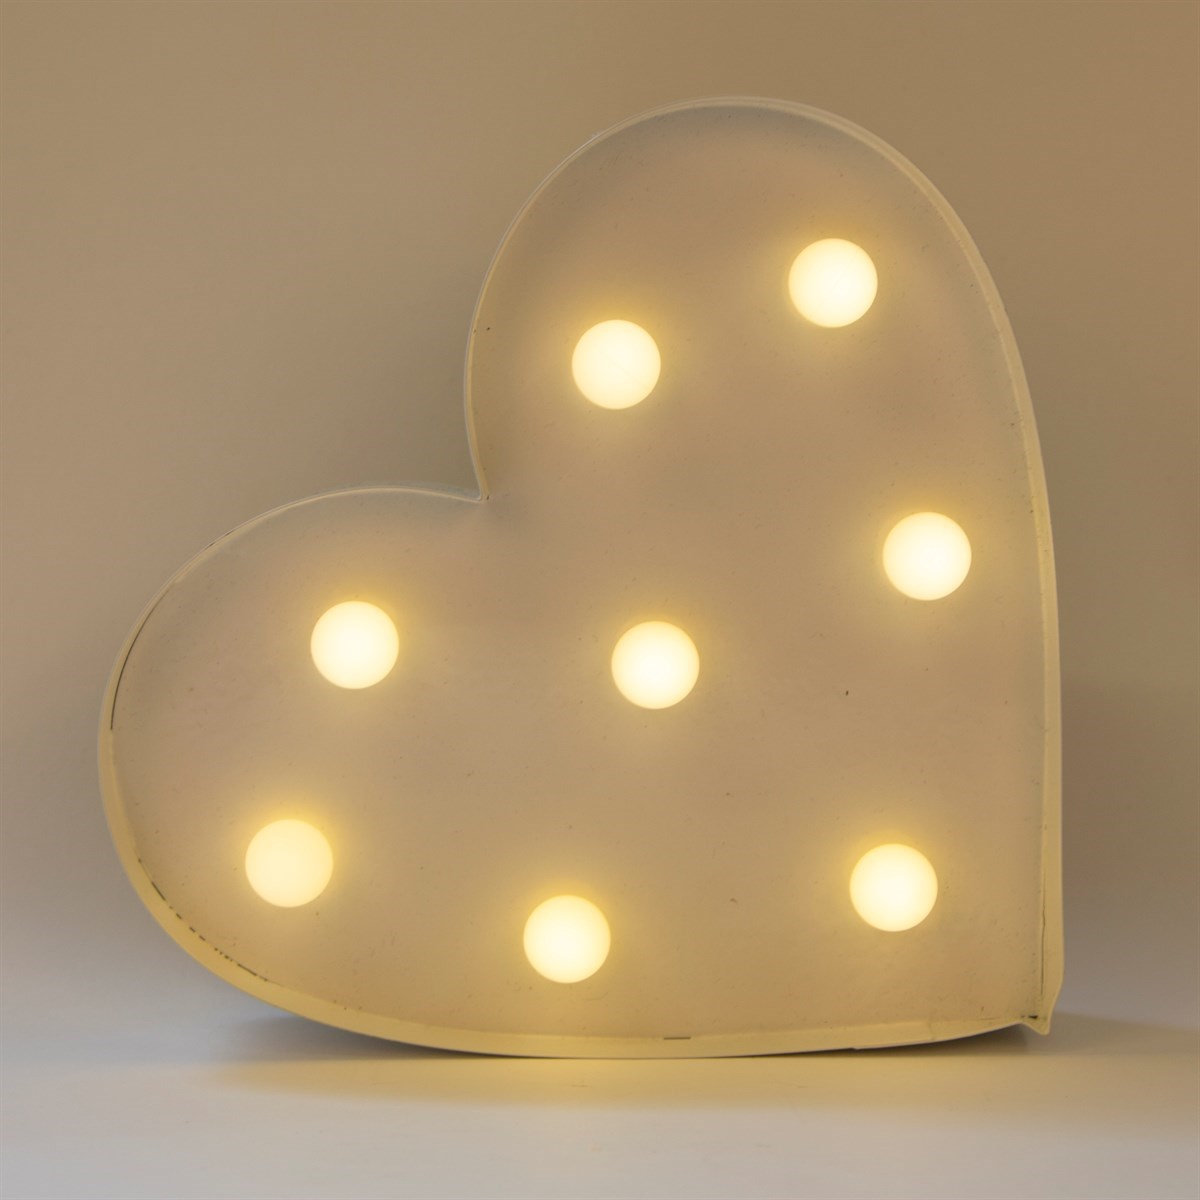 lighting lighting lampshades heart led light wall decoration